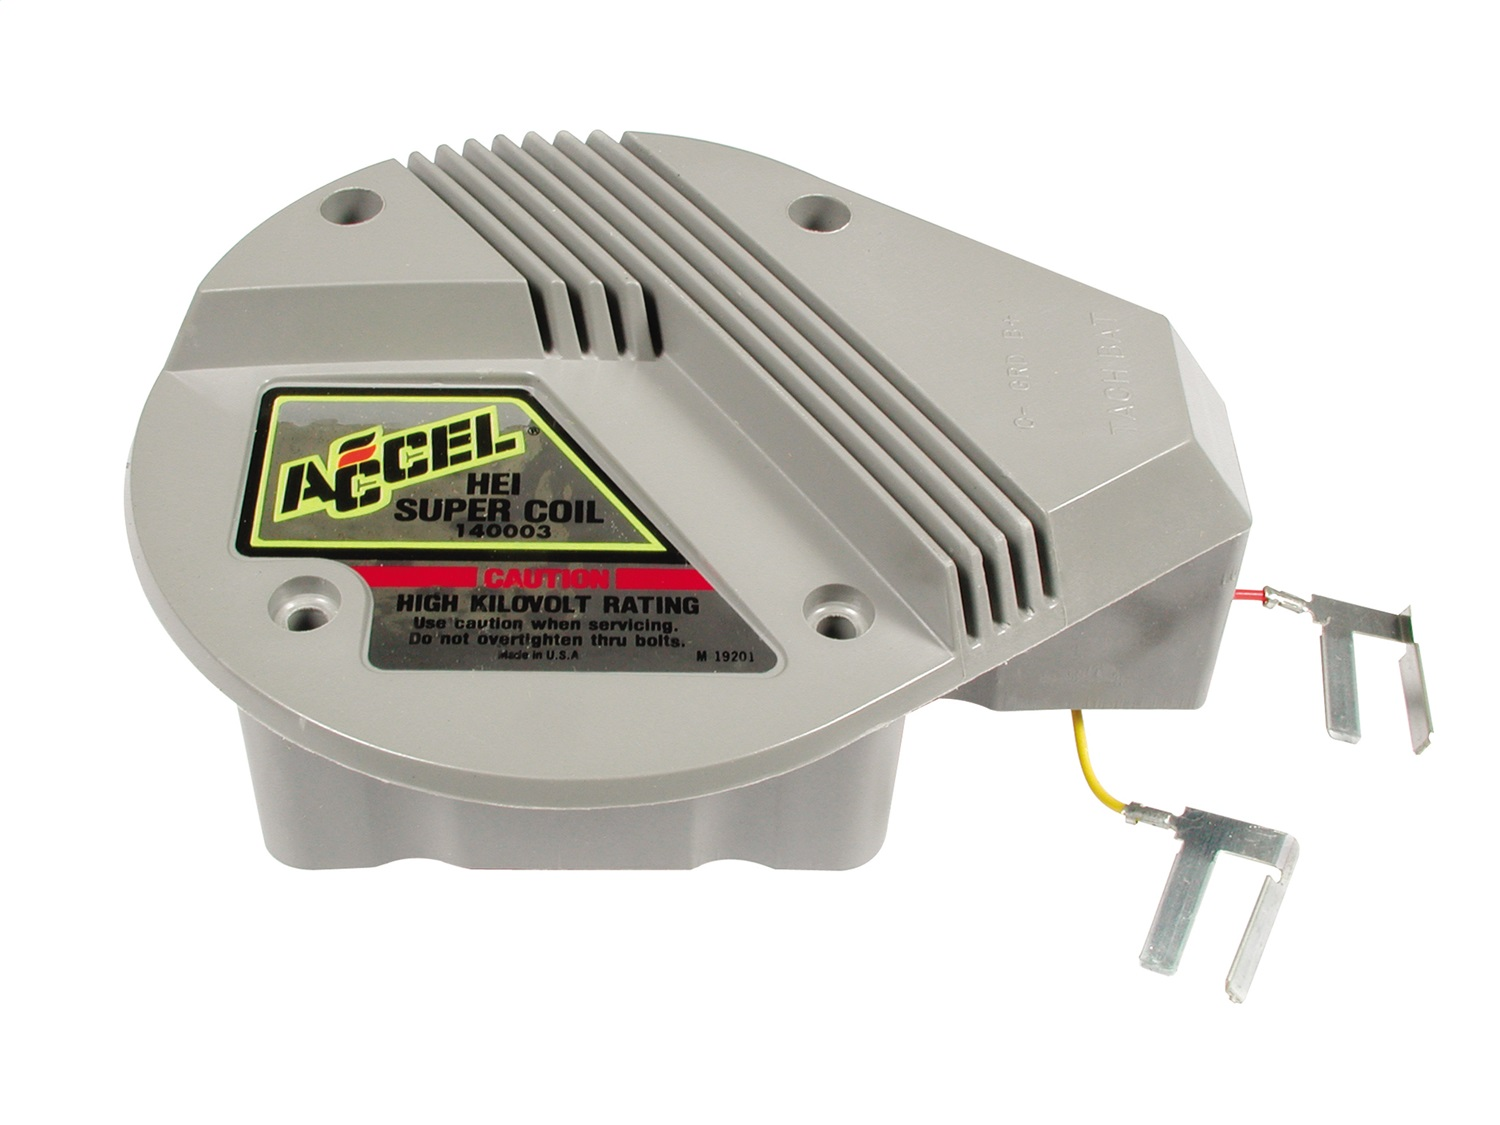 ACCEL 140003 GM HEI SUPERCOIL RED & YELLOW